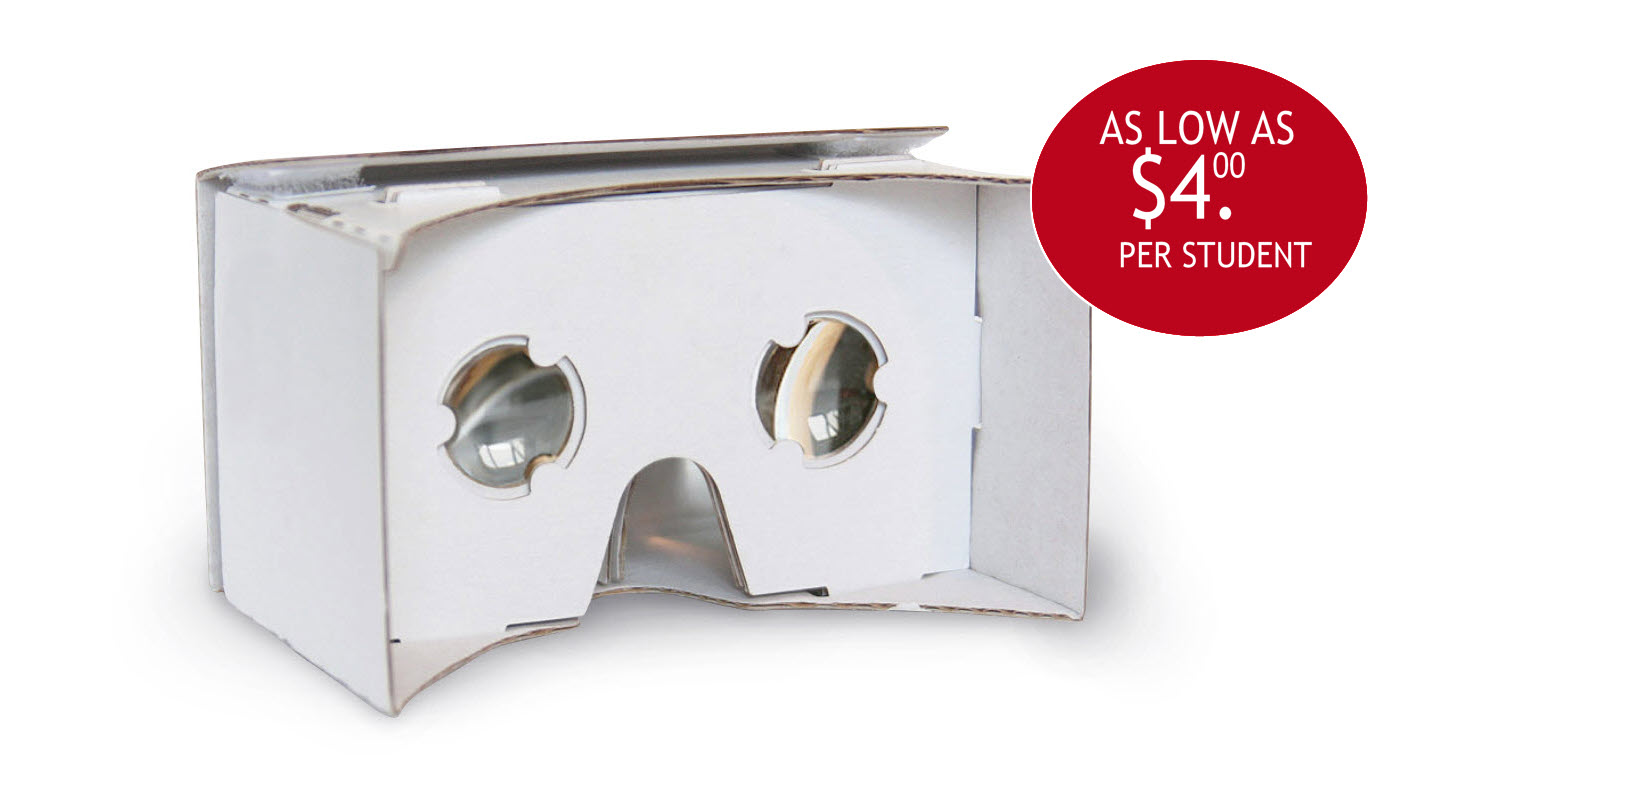 goodle-cardboard-kits-eweb360-virtual-reality-rentals2